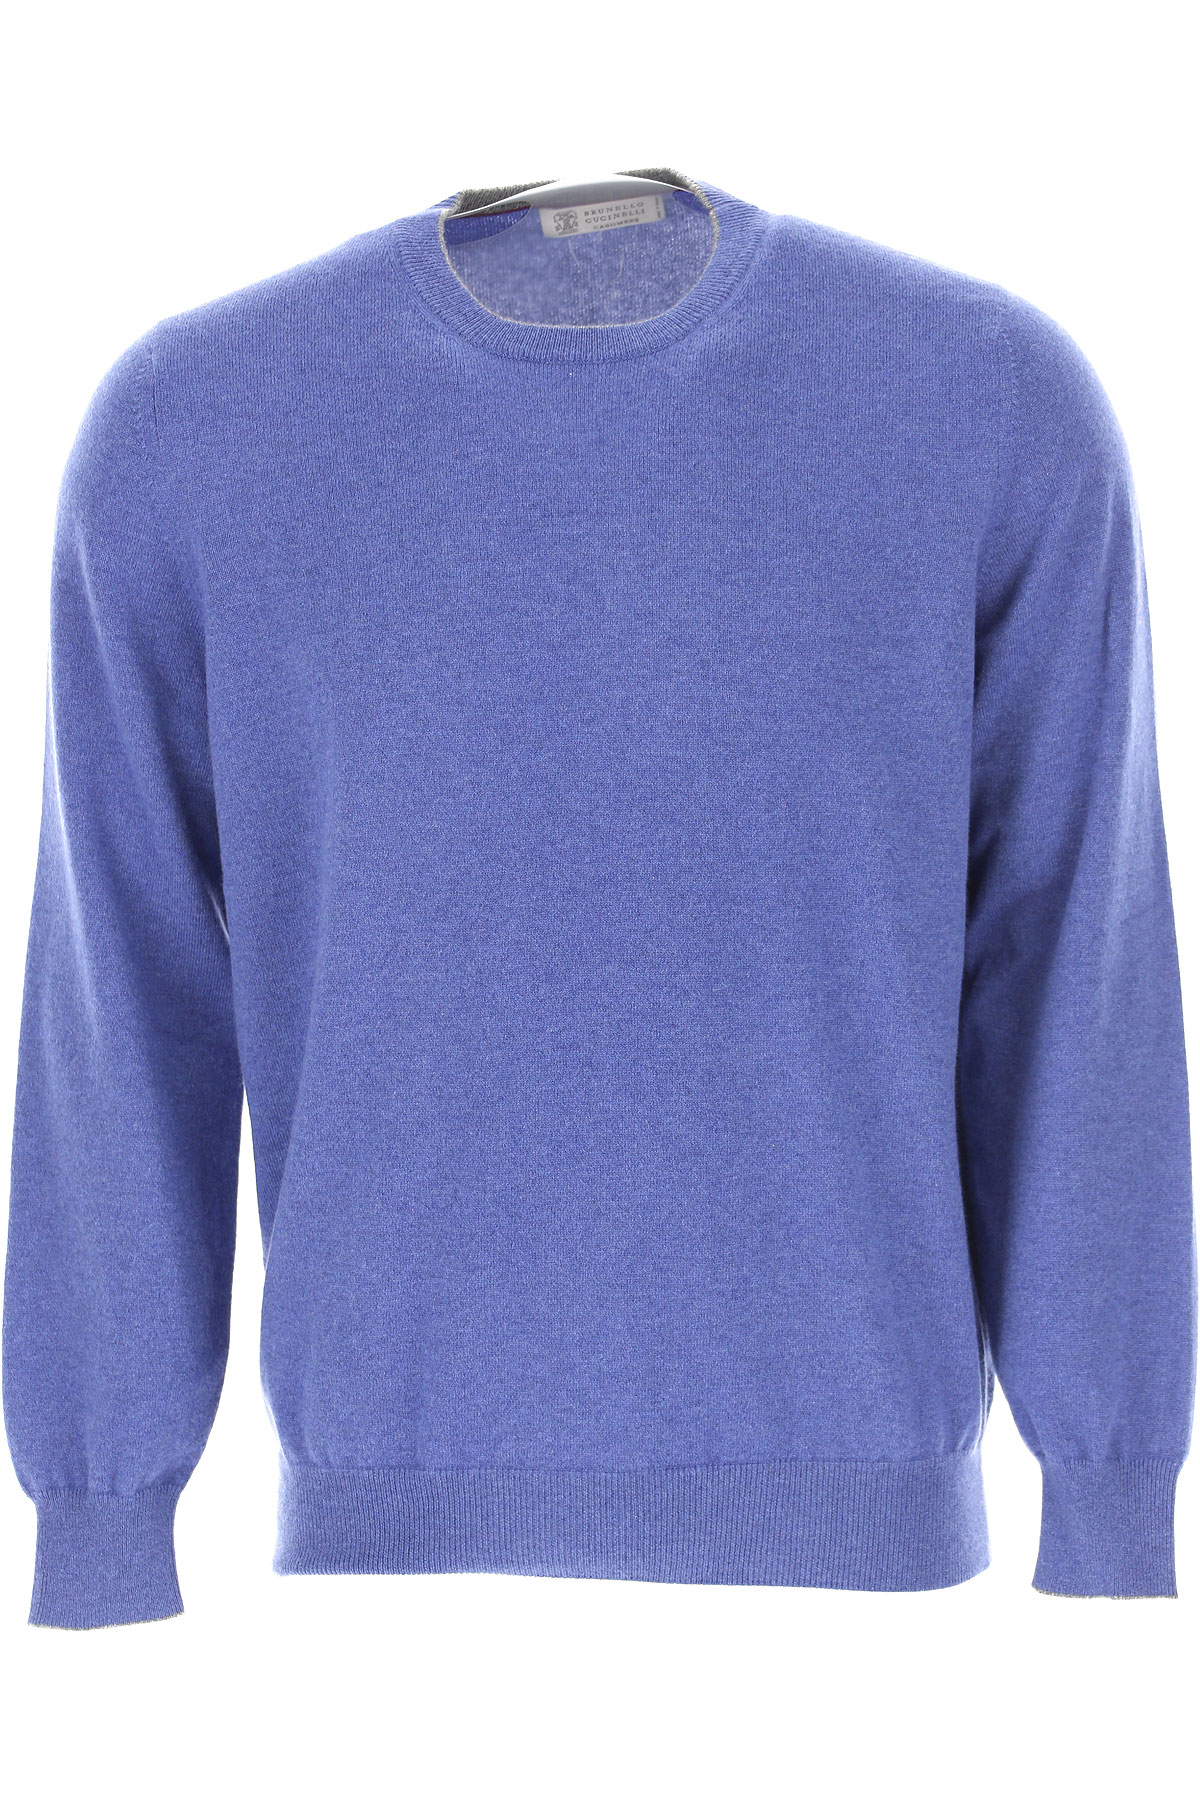 Brunello Cucinelli Sweater for Men Jumper, Blue, Cashmere, 2019, M XXL XXXL